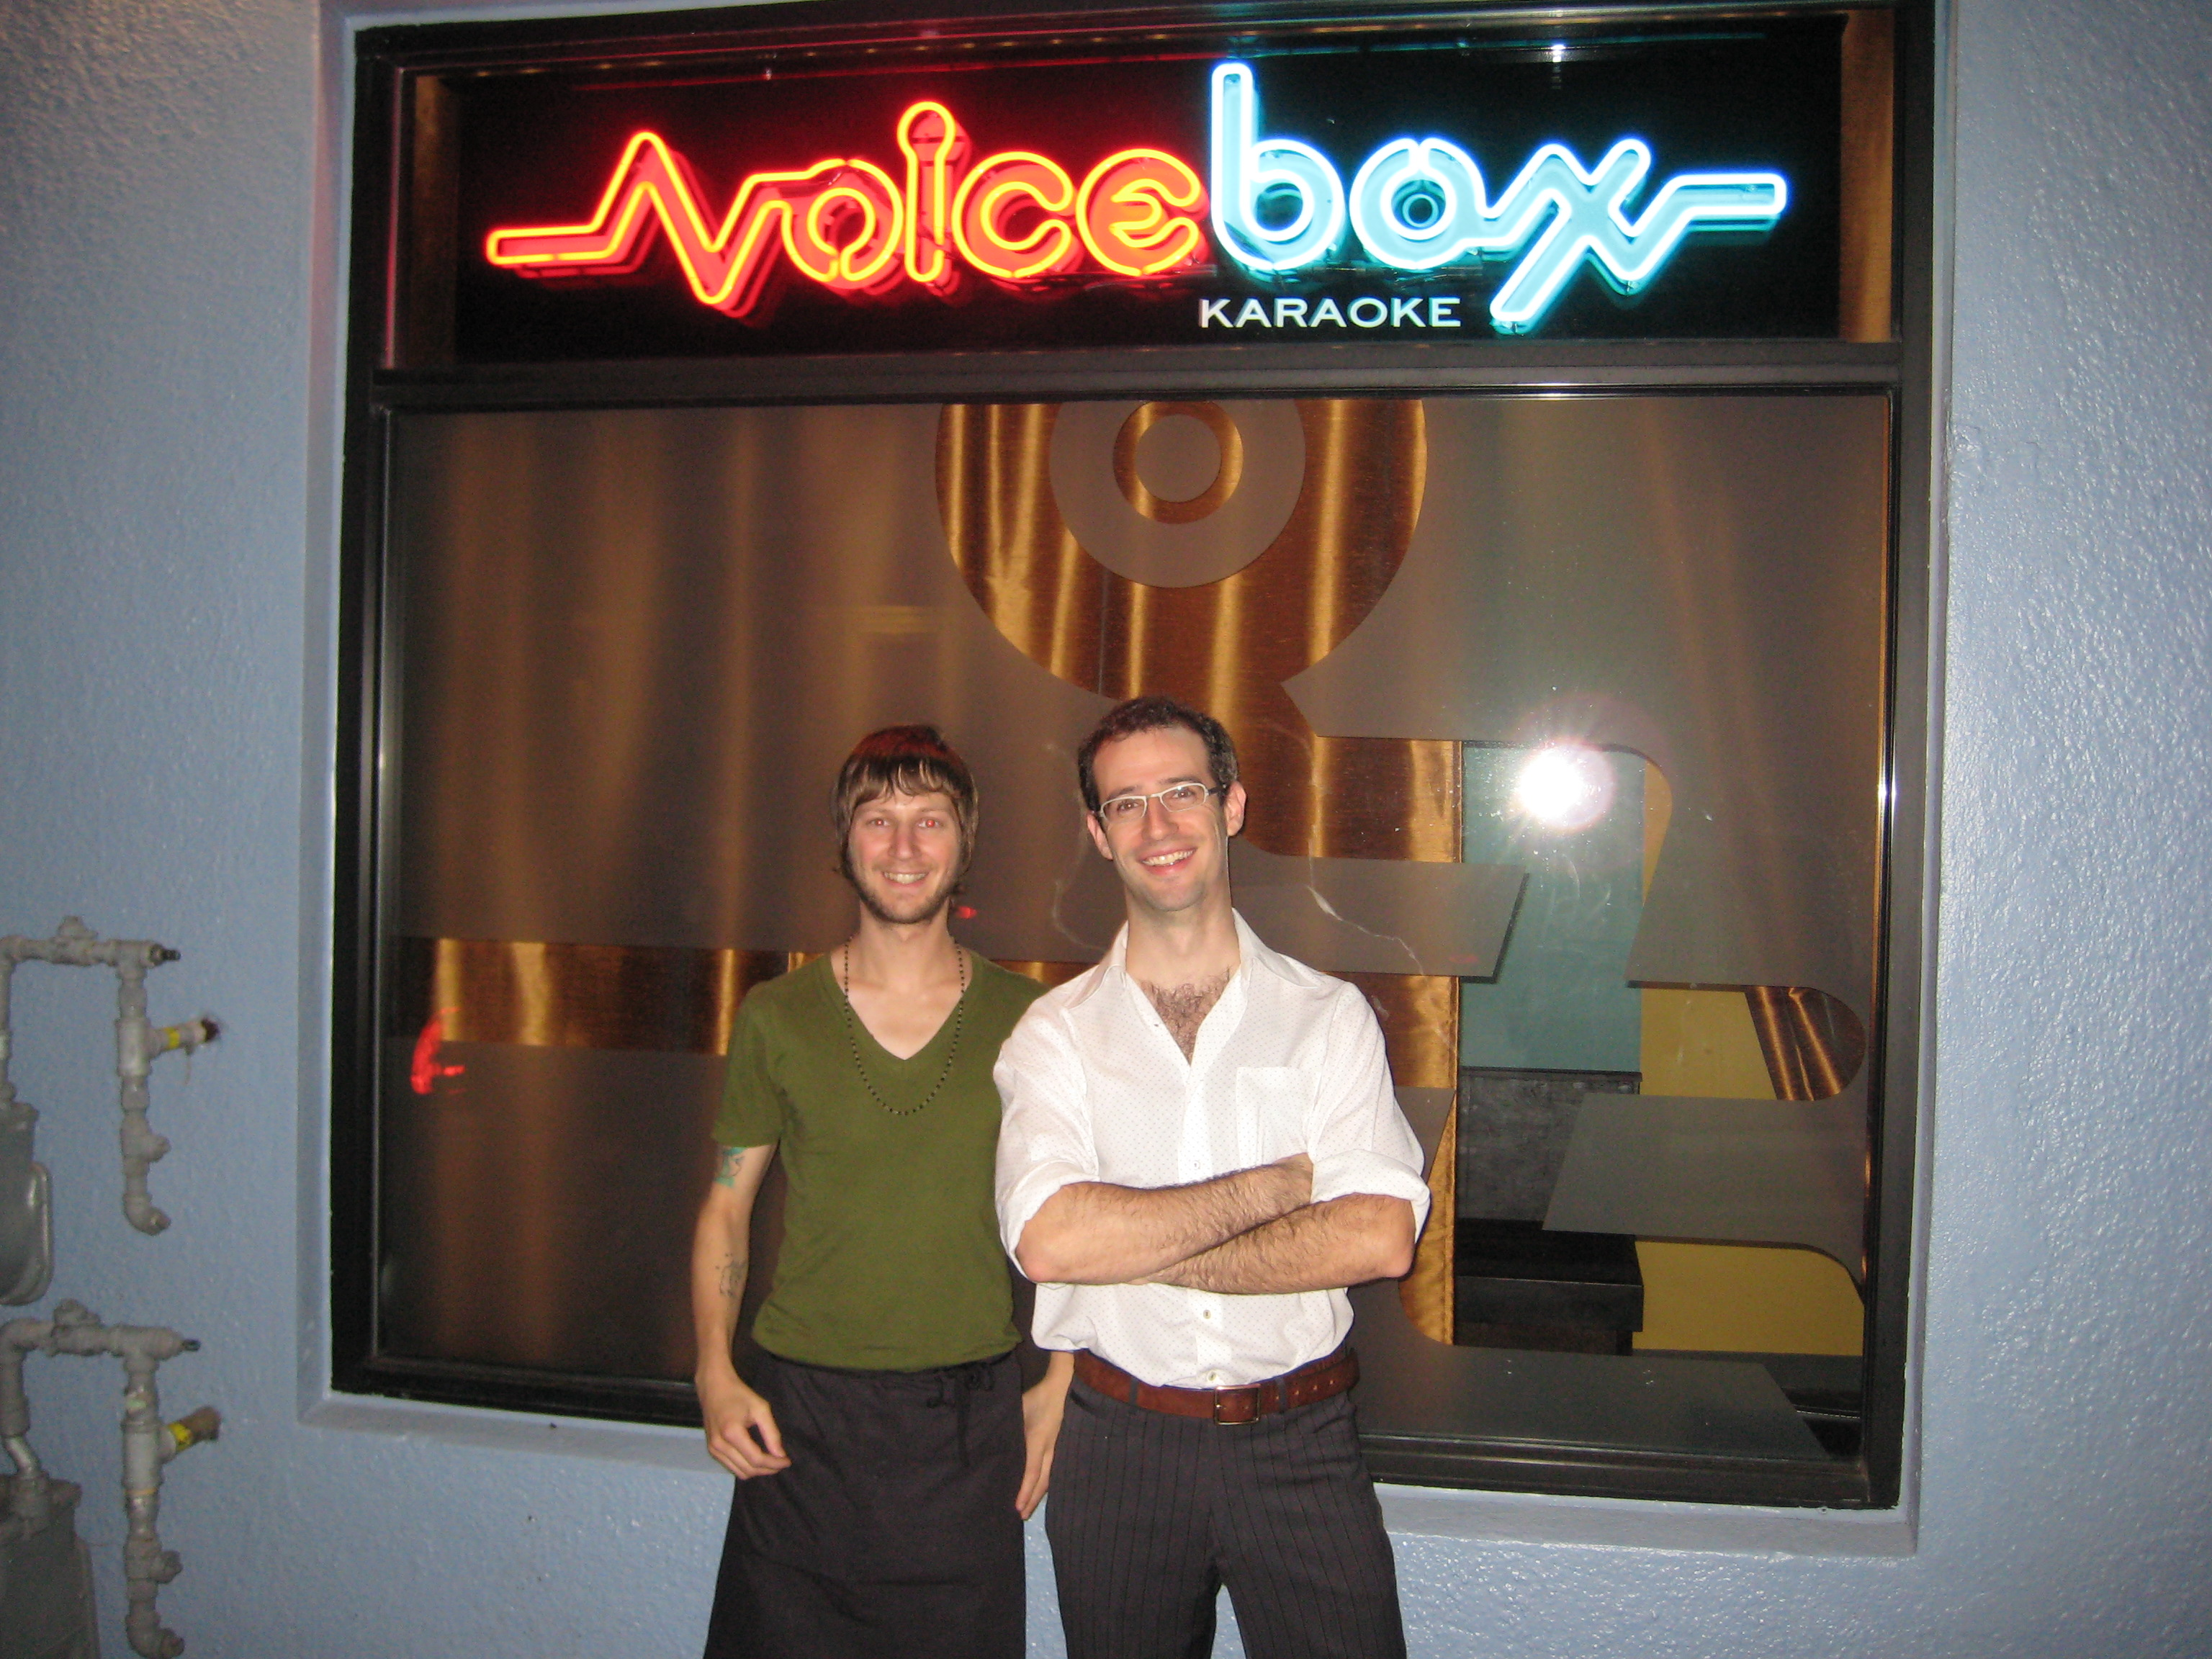 Voicebox Karakoe Owner Scott Simon Right and Server Matt left.